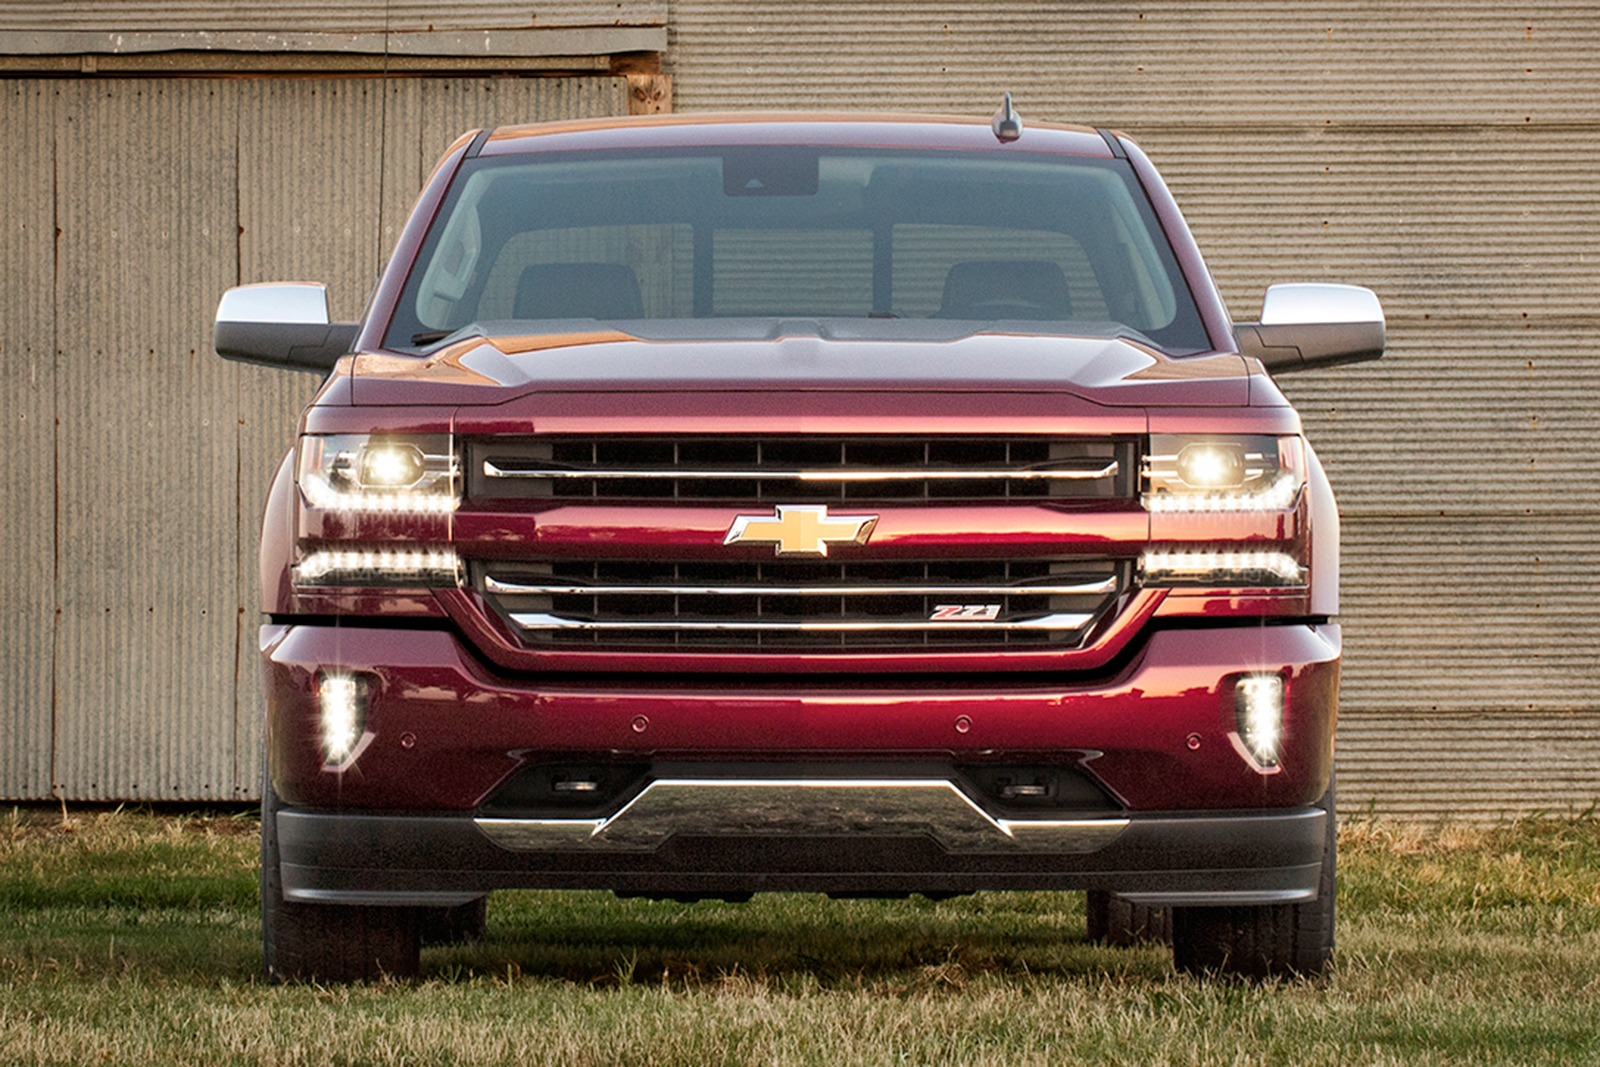 2016 chevy silverado color sulphur springs red jay hodge. Black Bedroom Furniture Sets. Home Design Ideas